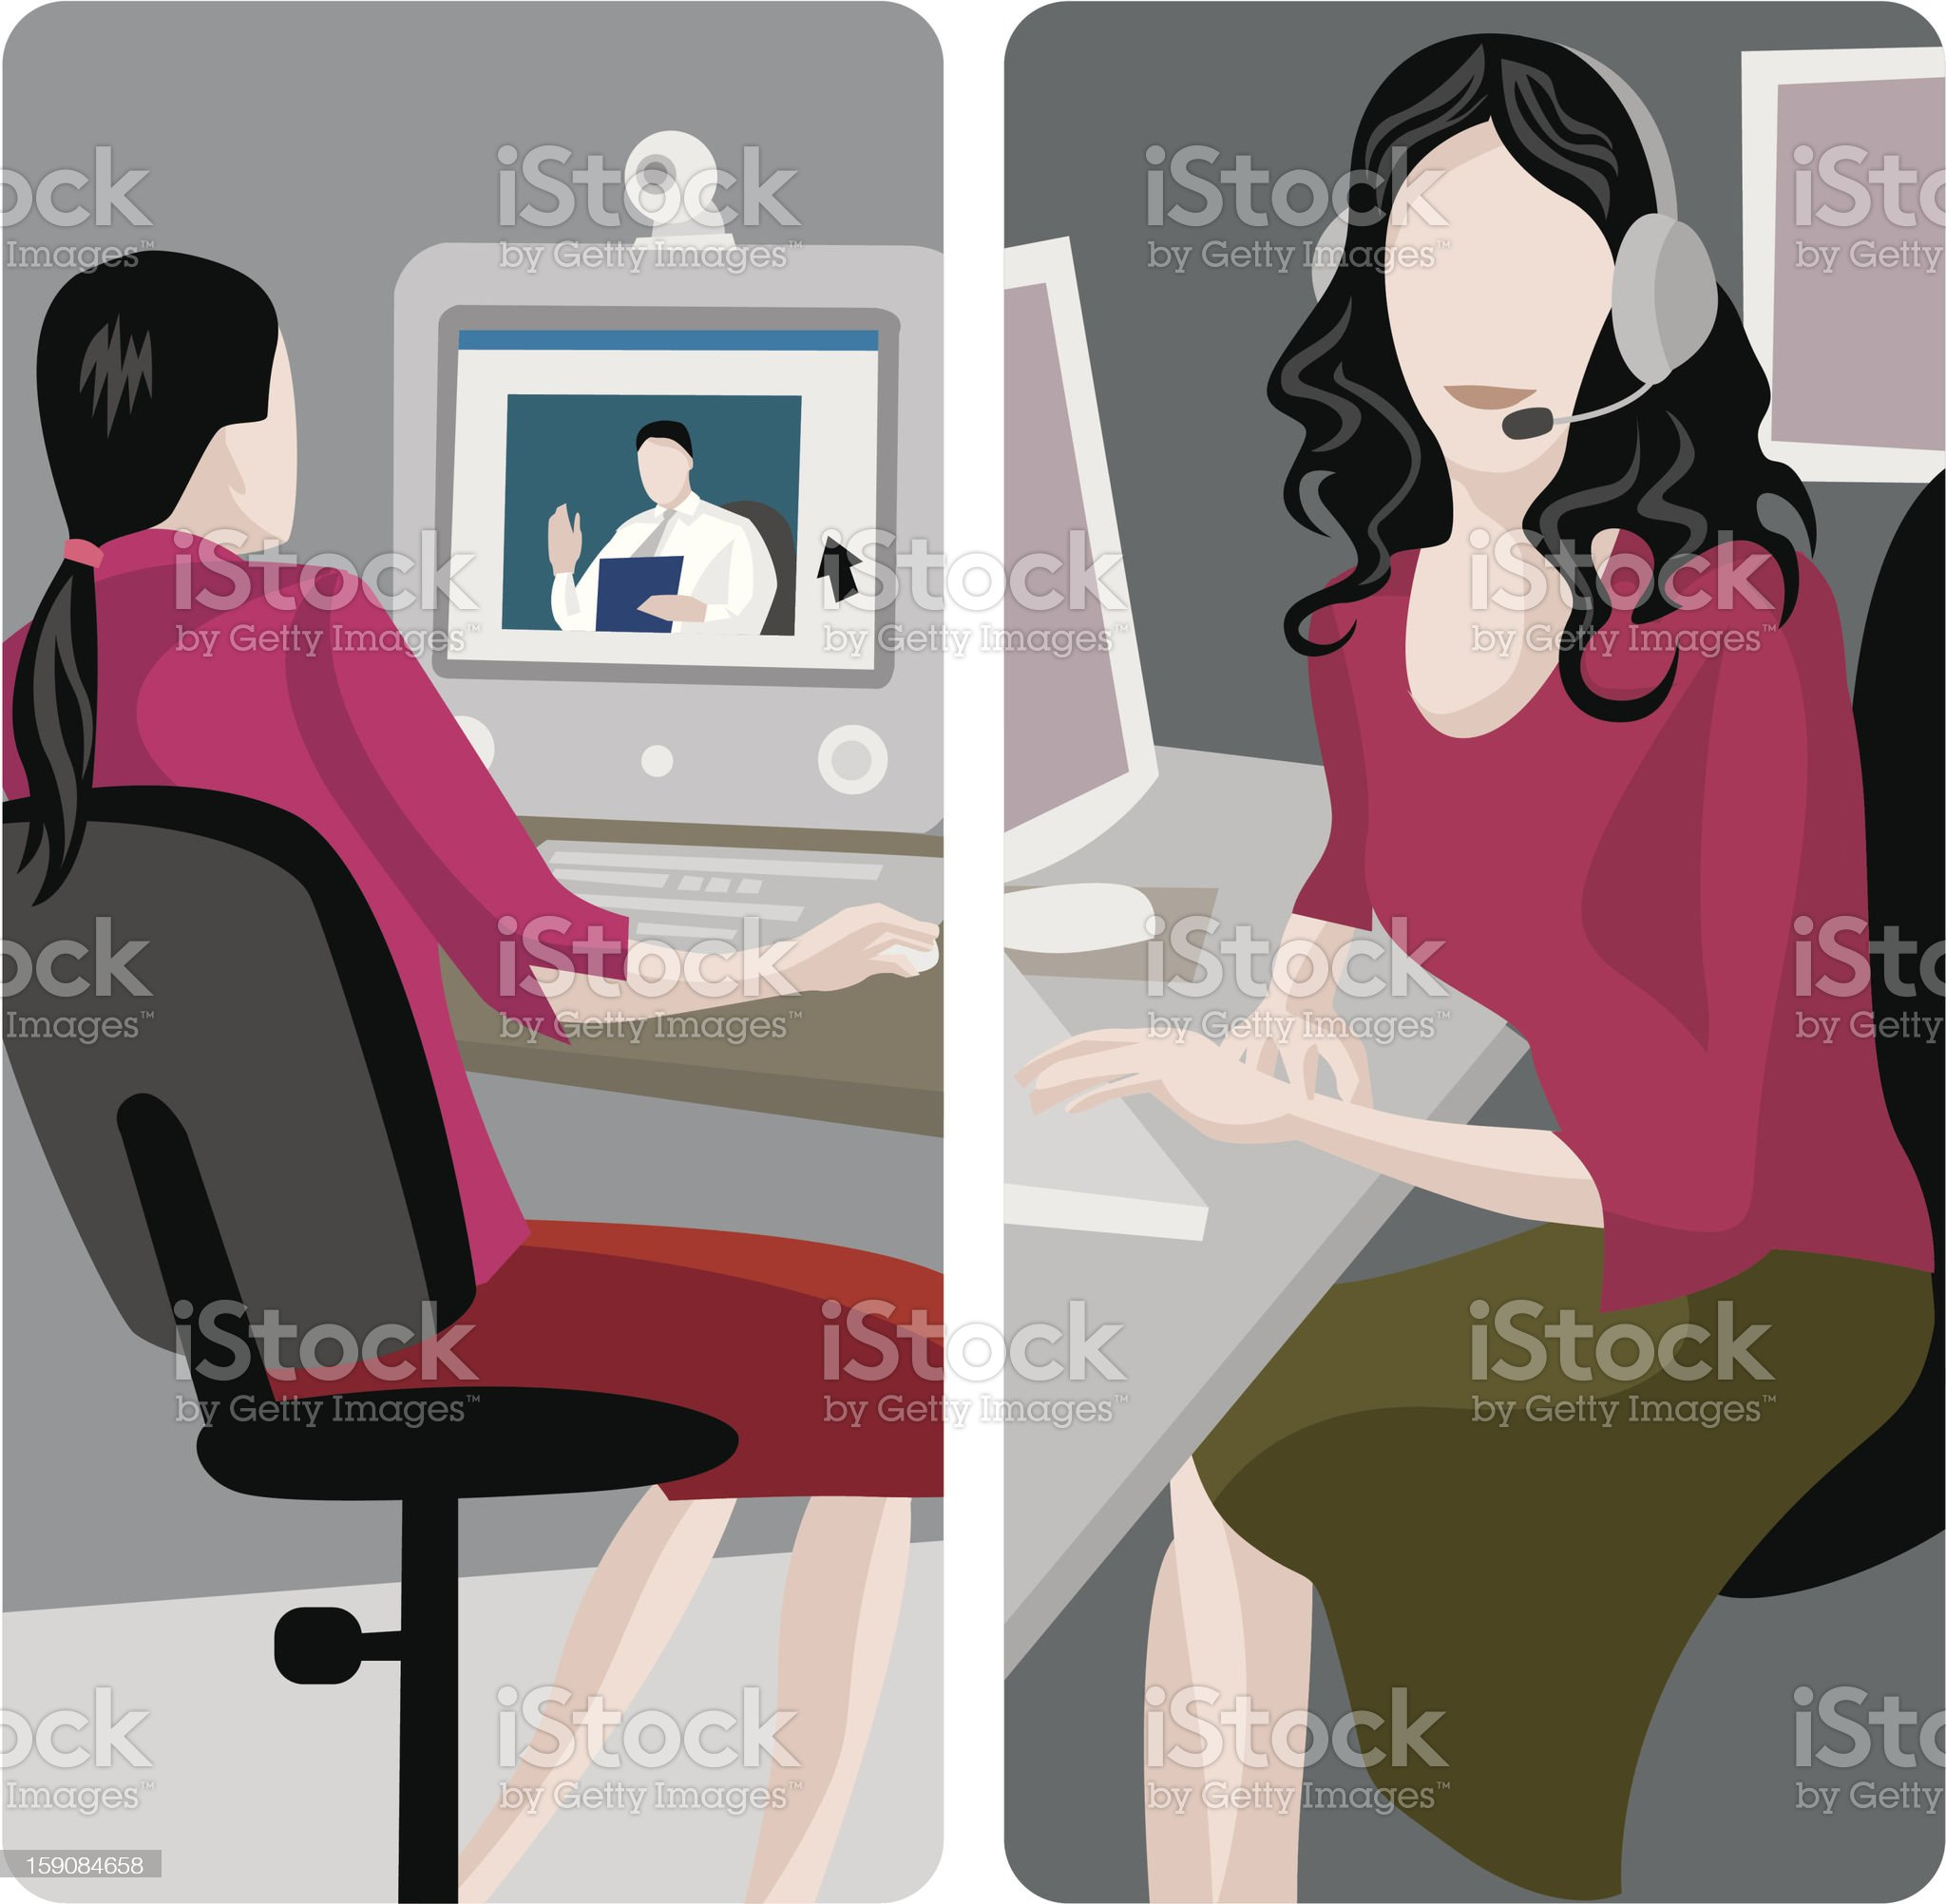 Illustration of service worker using headset and computer royalty-free stock vector art